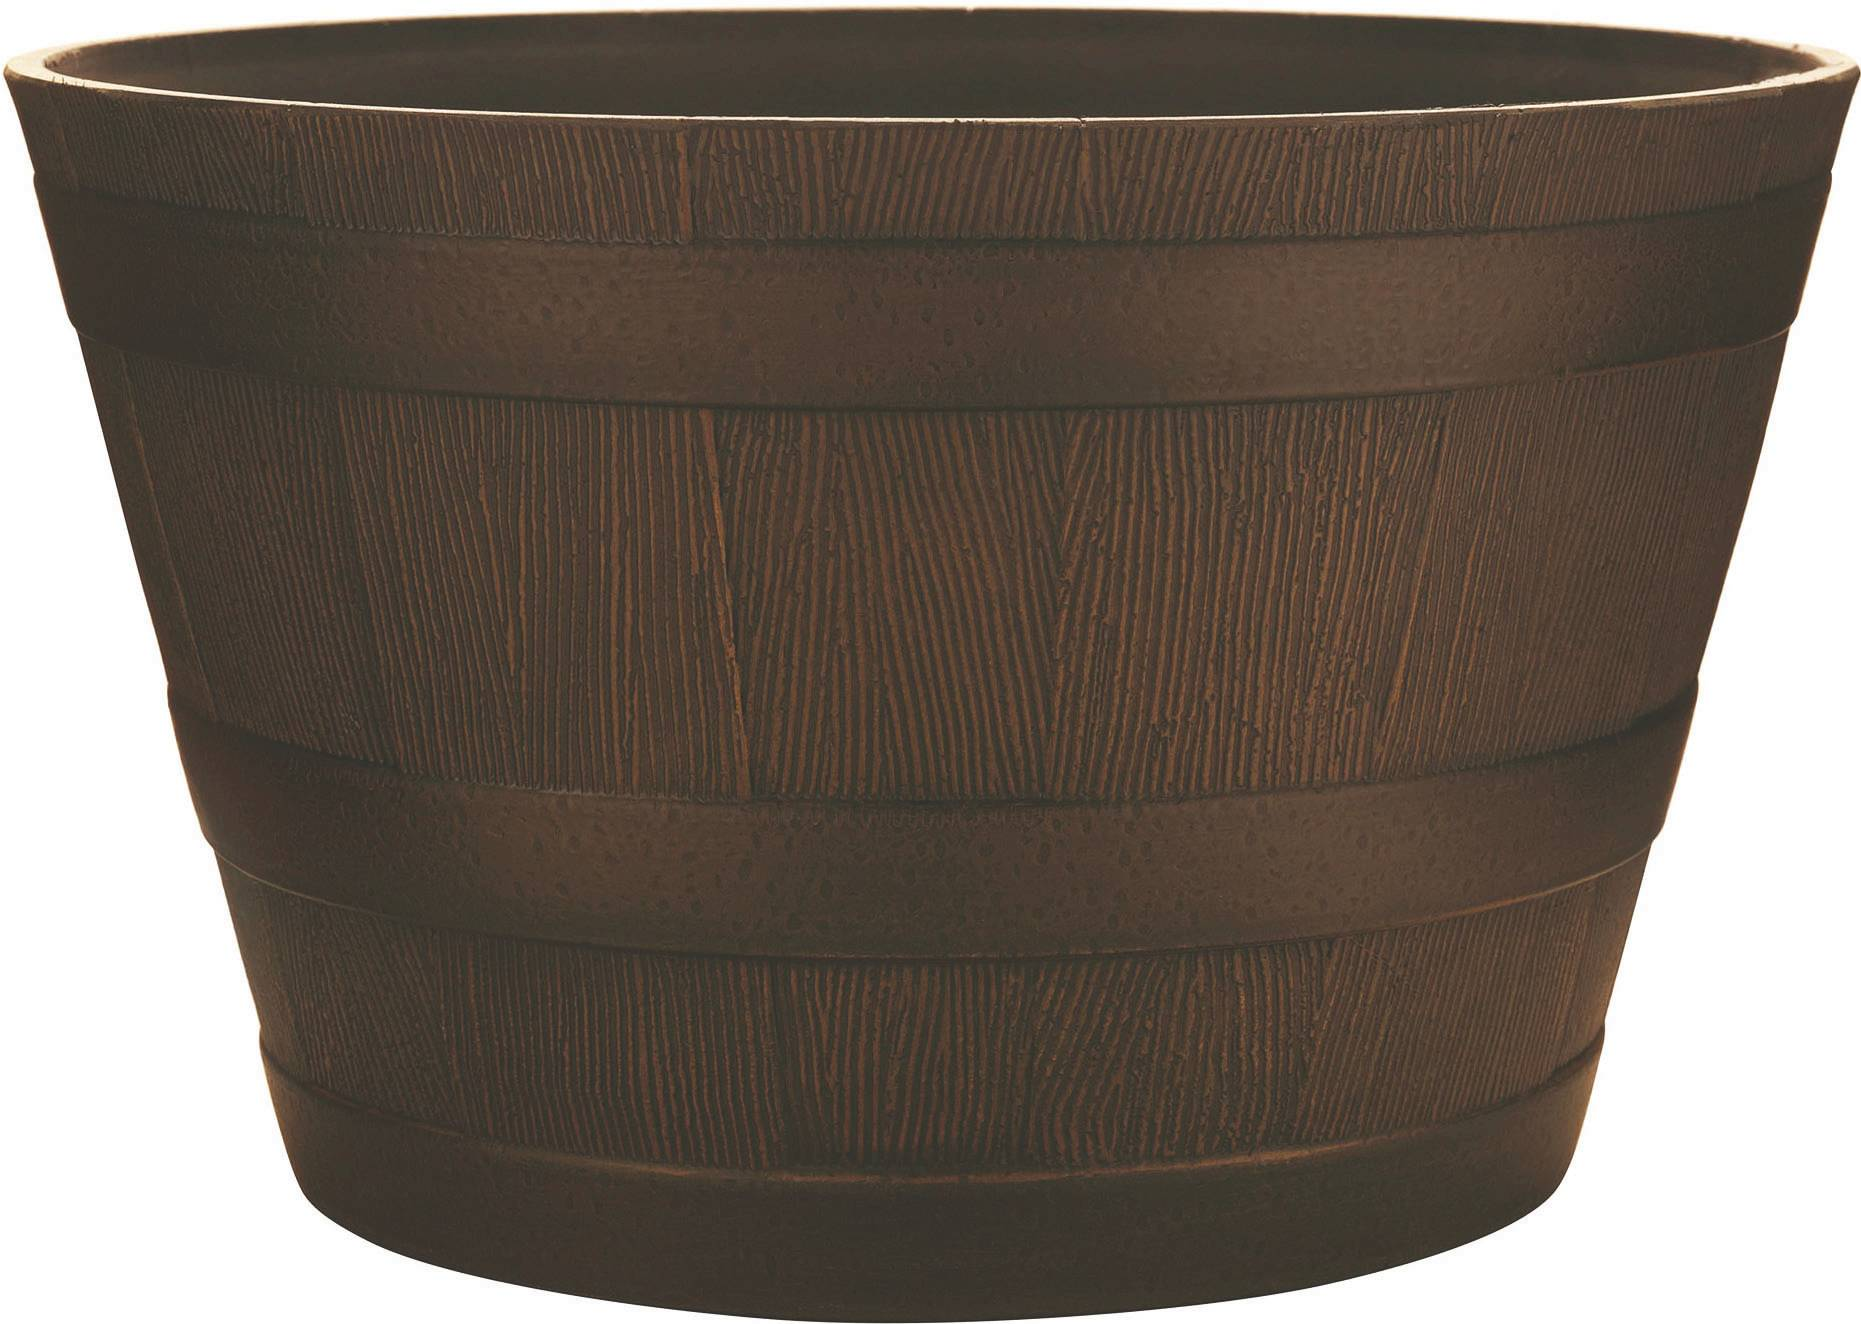 Southern Patio Hdr Whiskey Barrel Planter Ebay